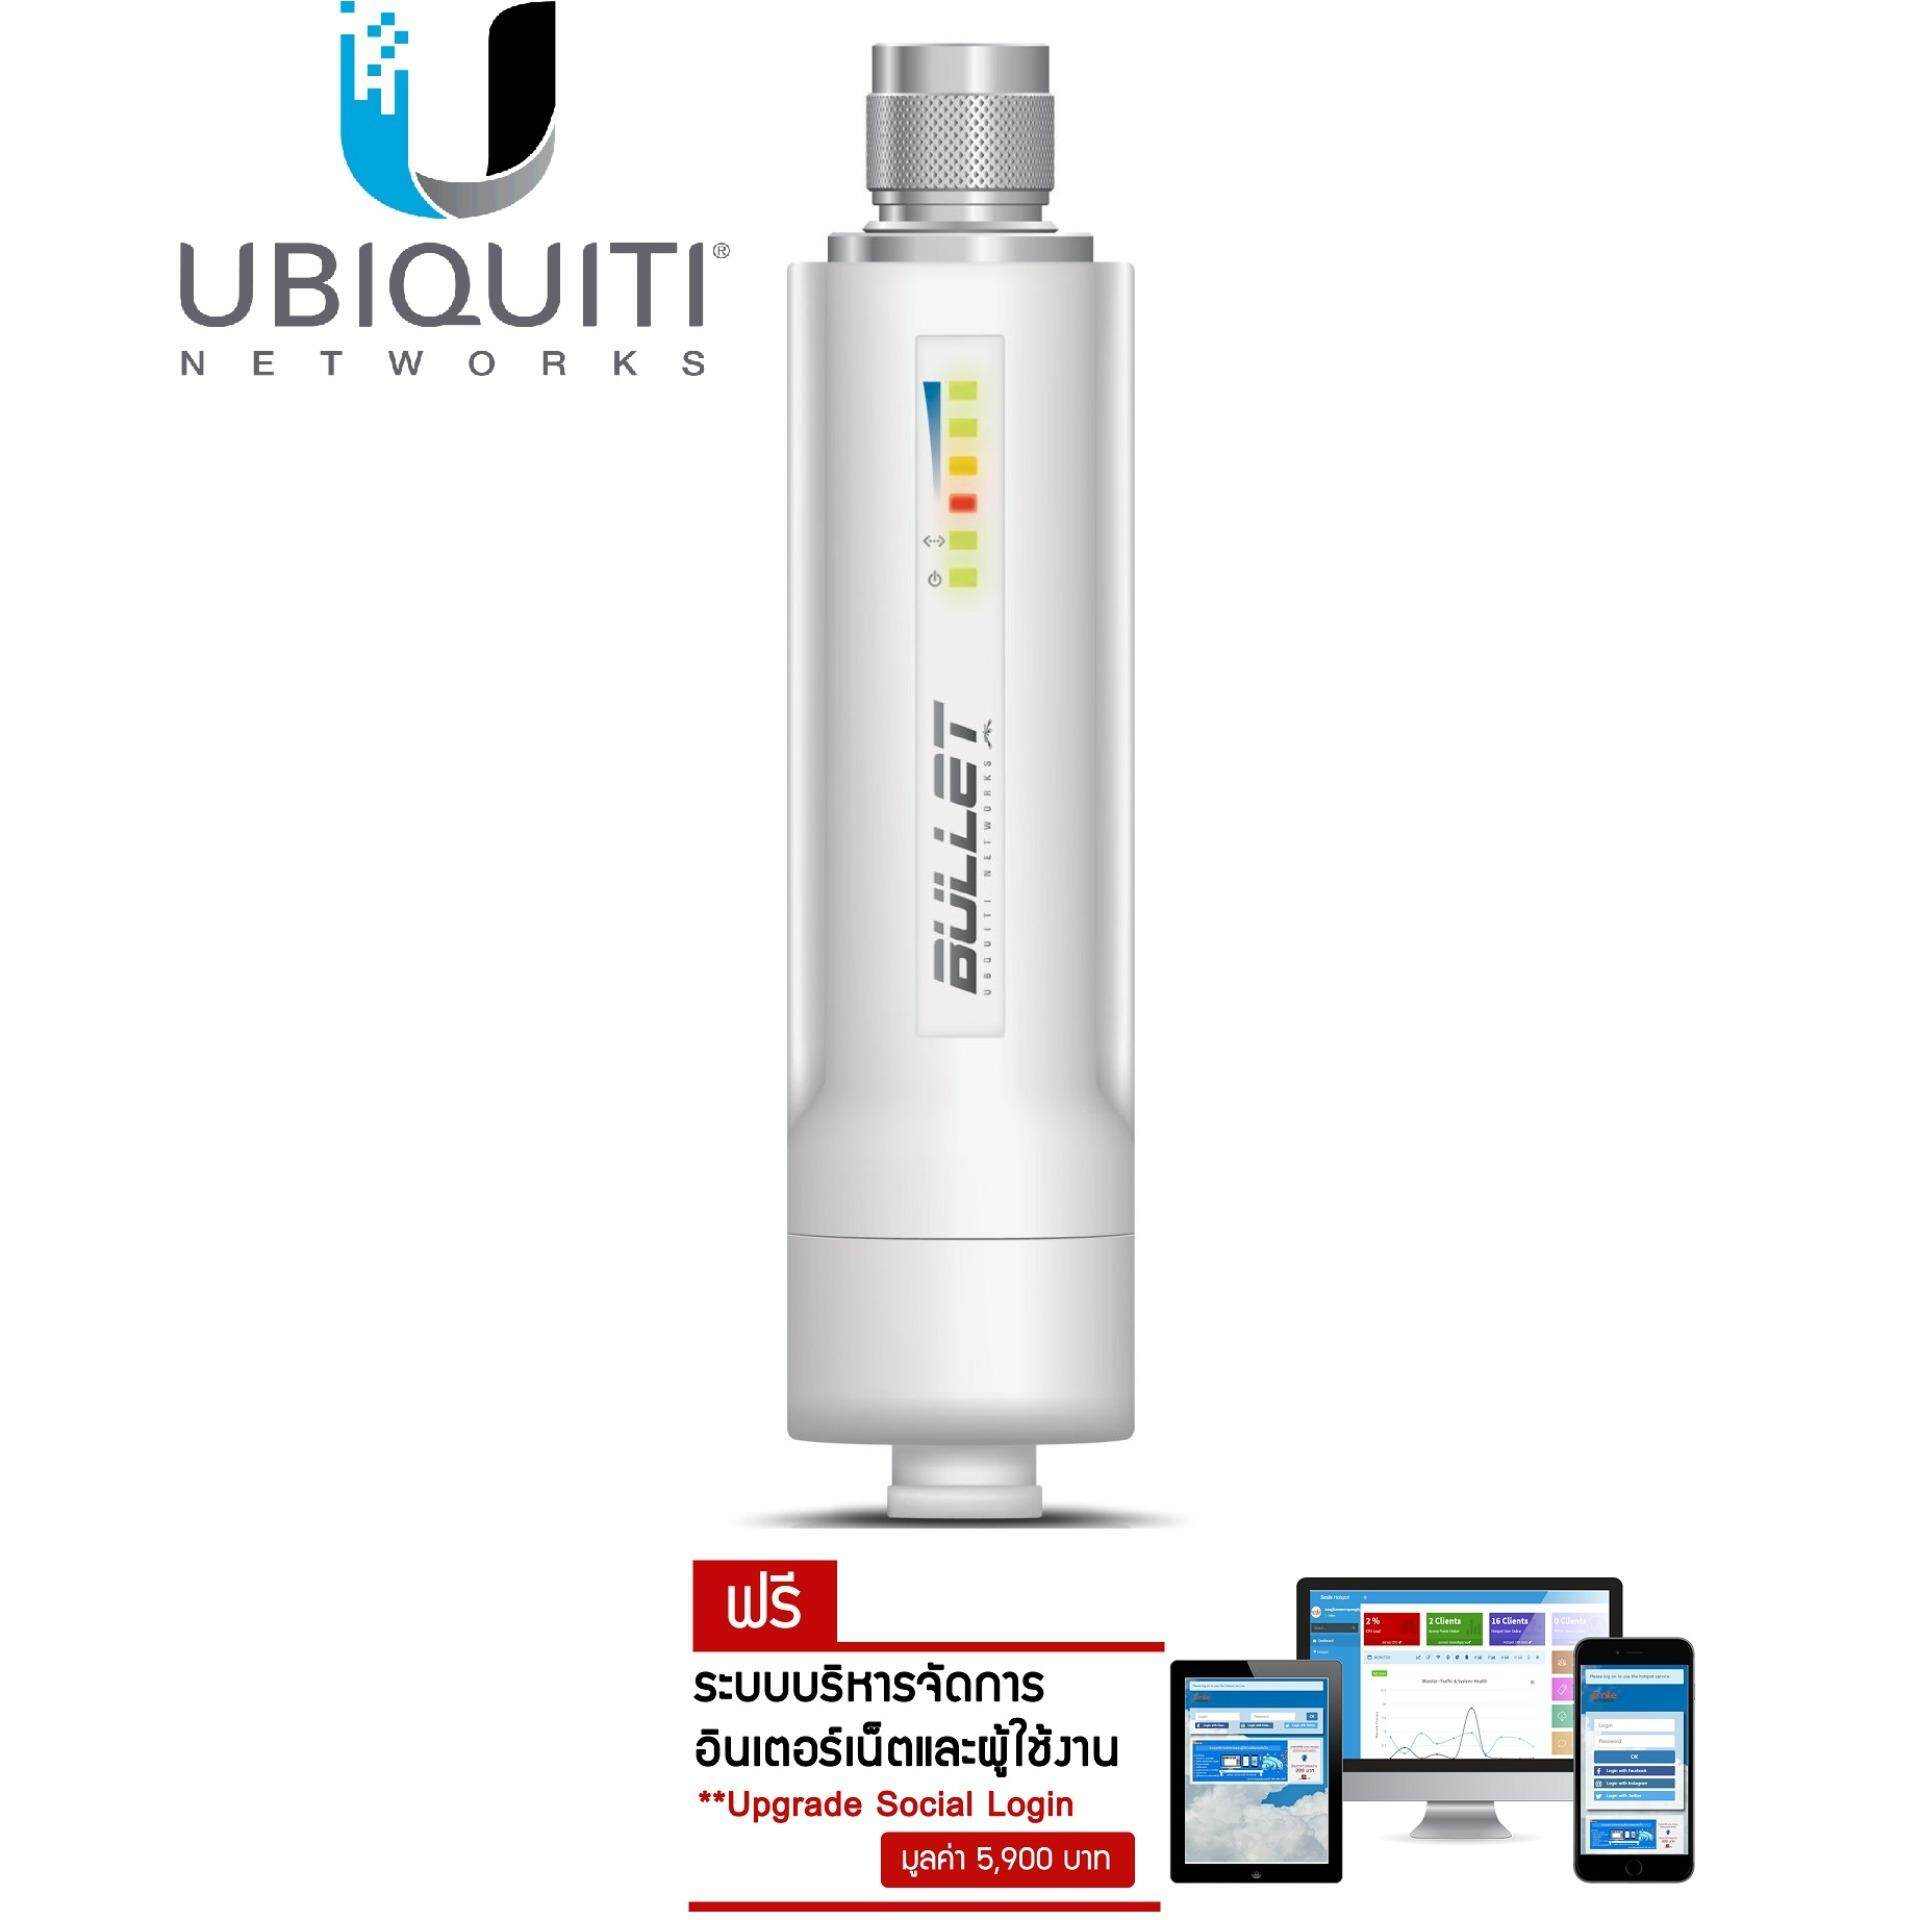 Ubiquiti Bullet M2HP ความถี่ 2.4Ghz ความเร็ว 150Mbps หัวต่อแบบ N-Type Male พร้อม PoE-24V + Free Smile Hotspot No Monthly Fee Suitable for use with Mikrotik